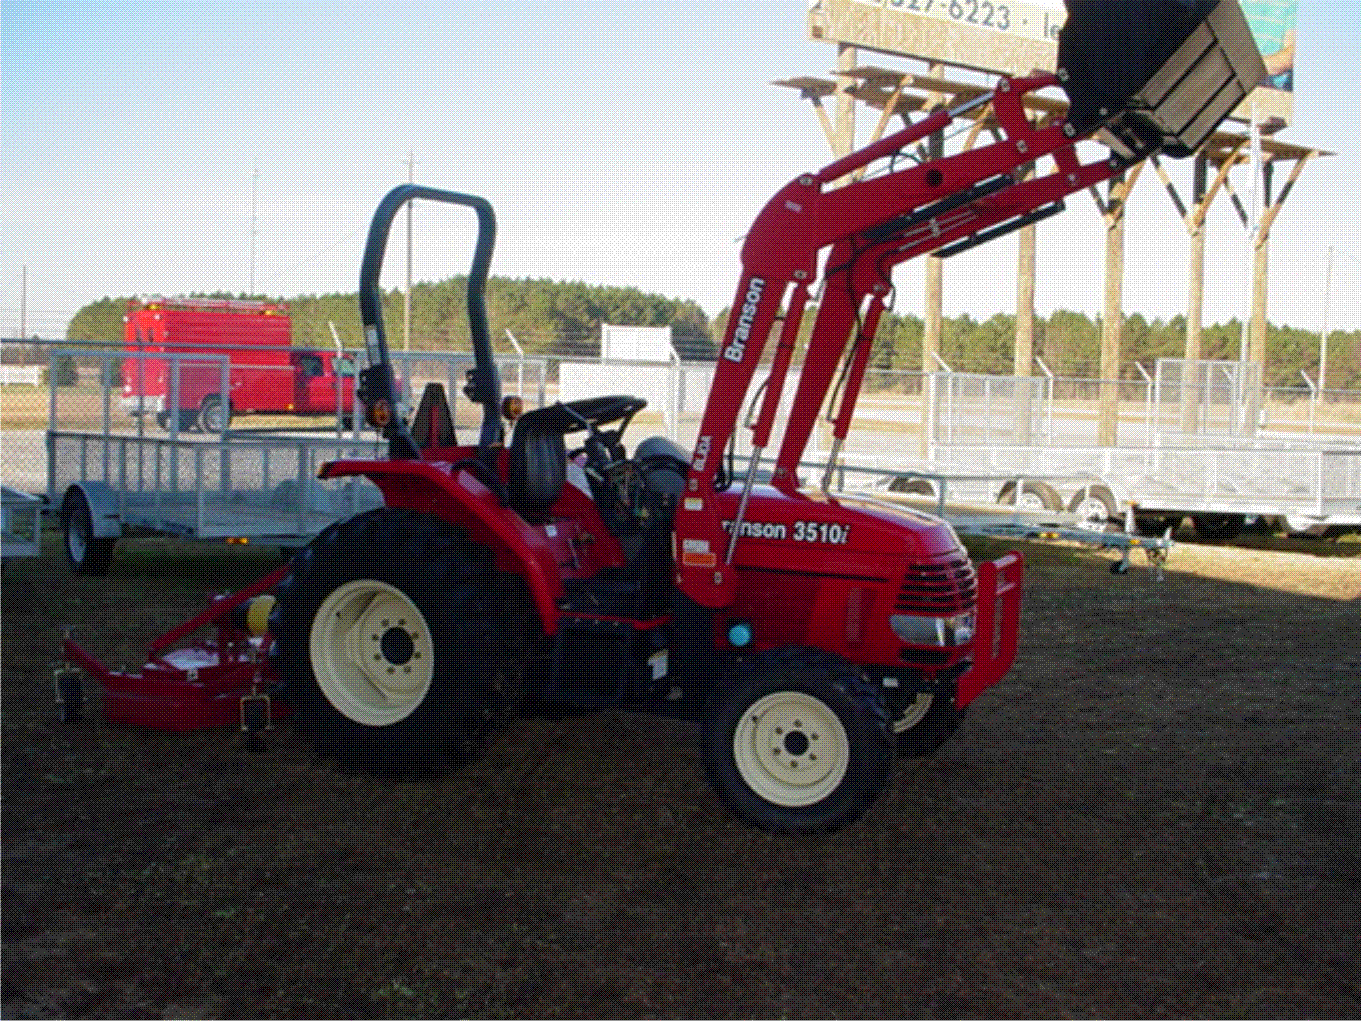 3510i with loader shown with industrial tires 3510i with loader